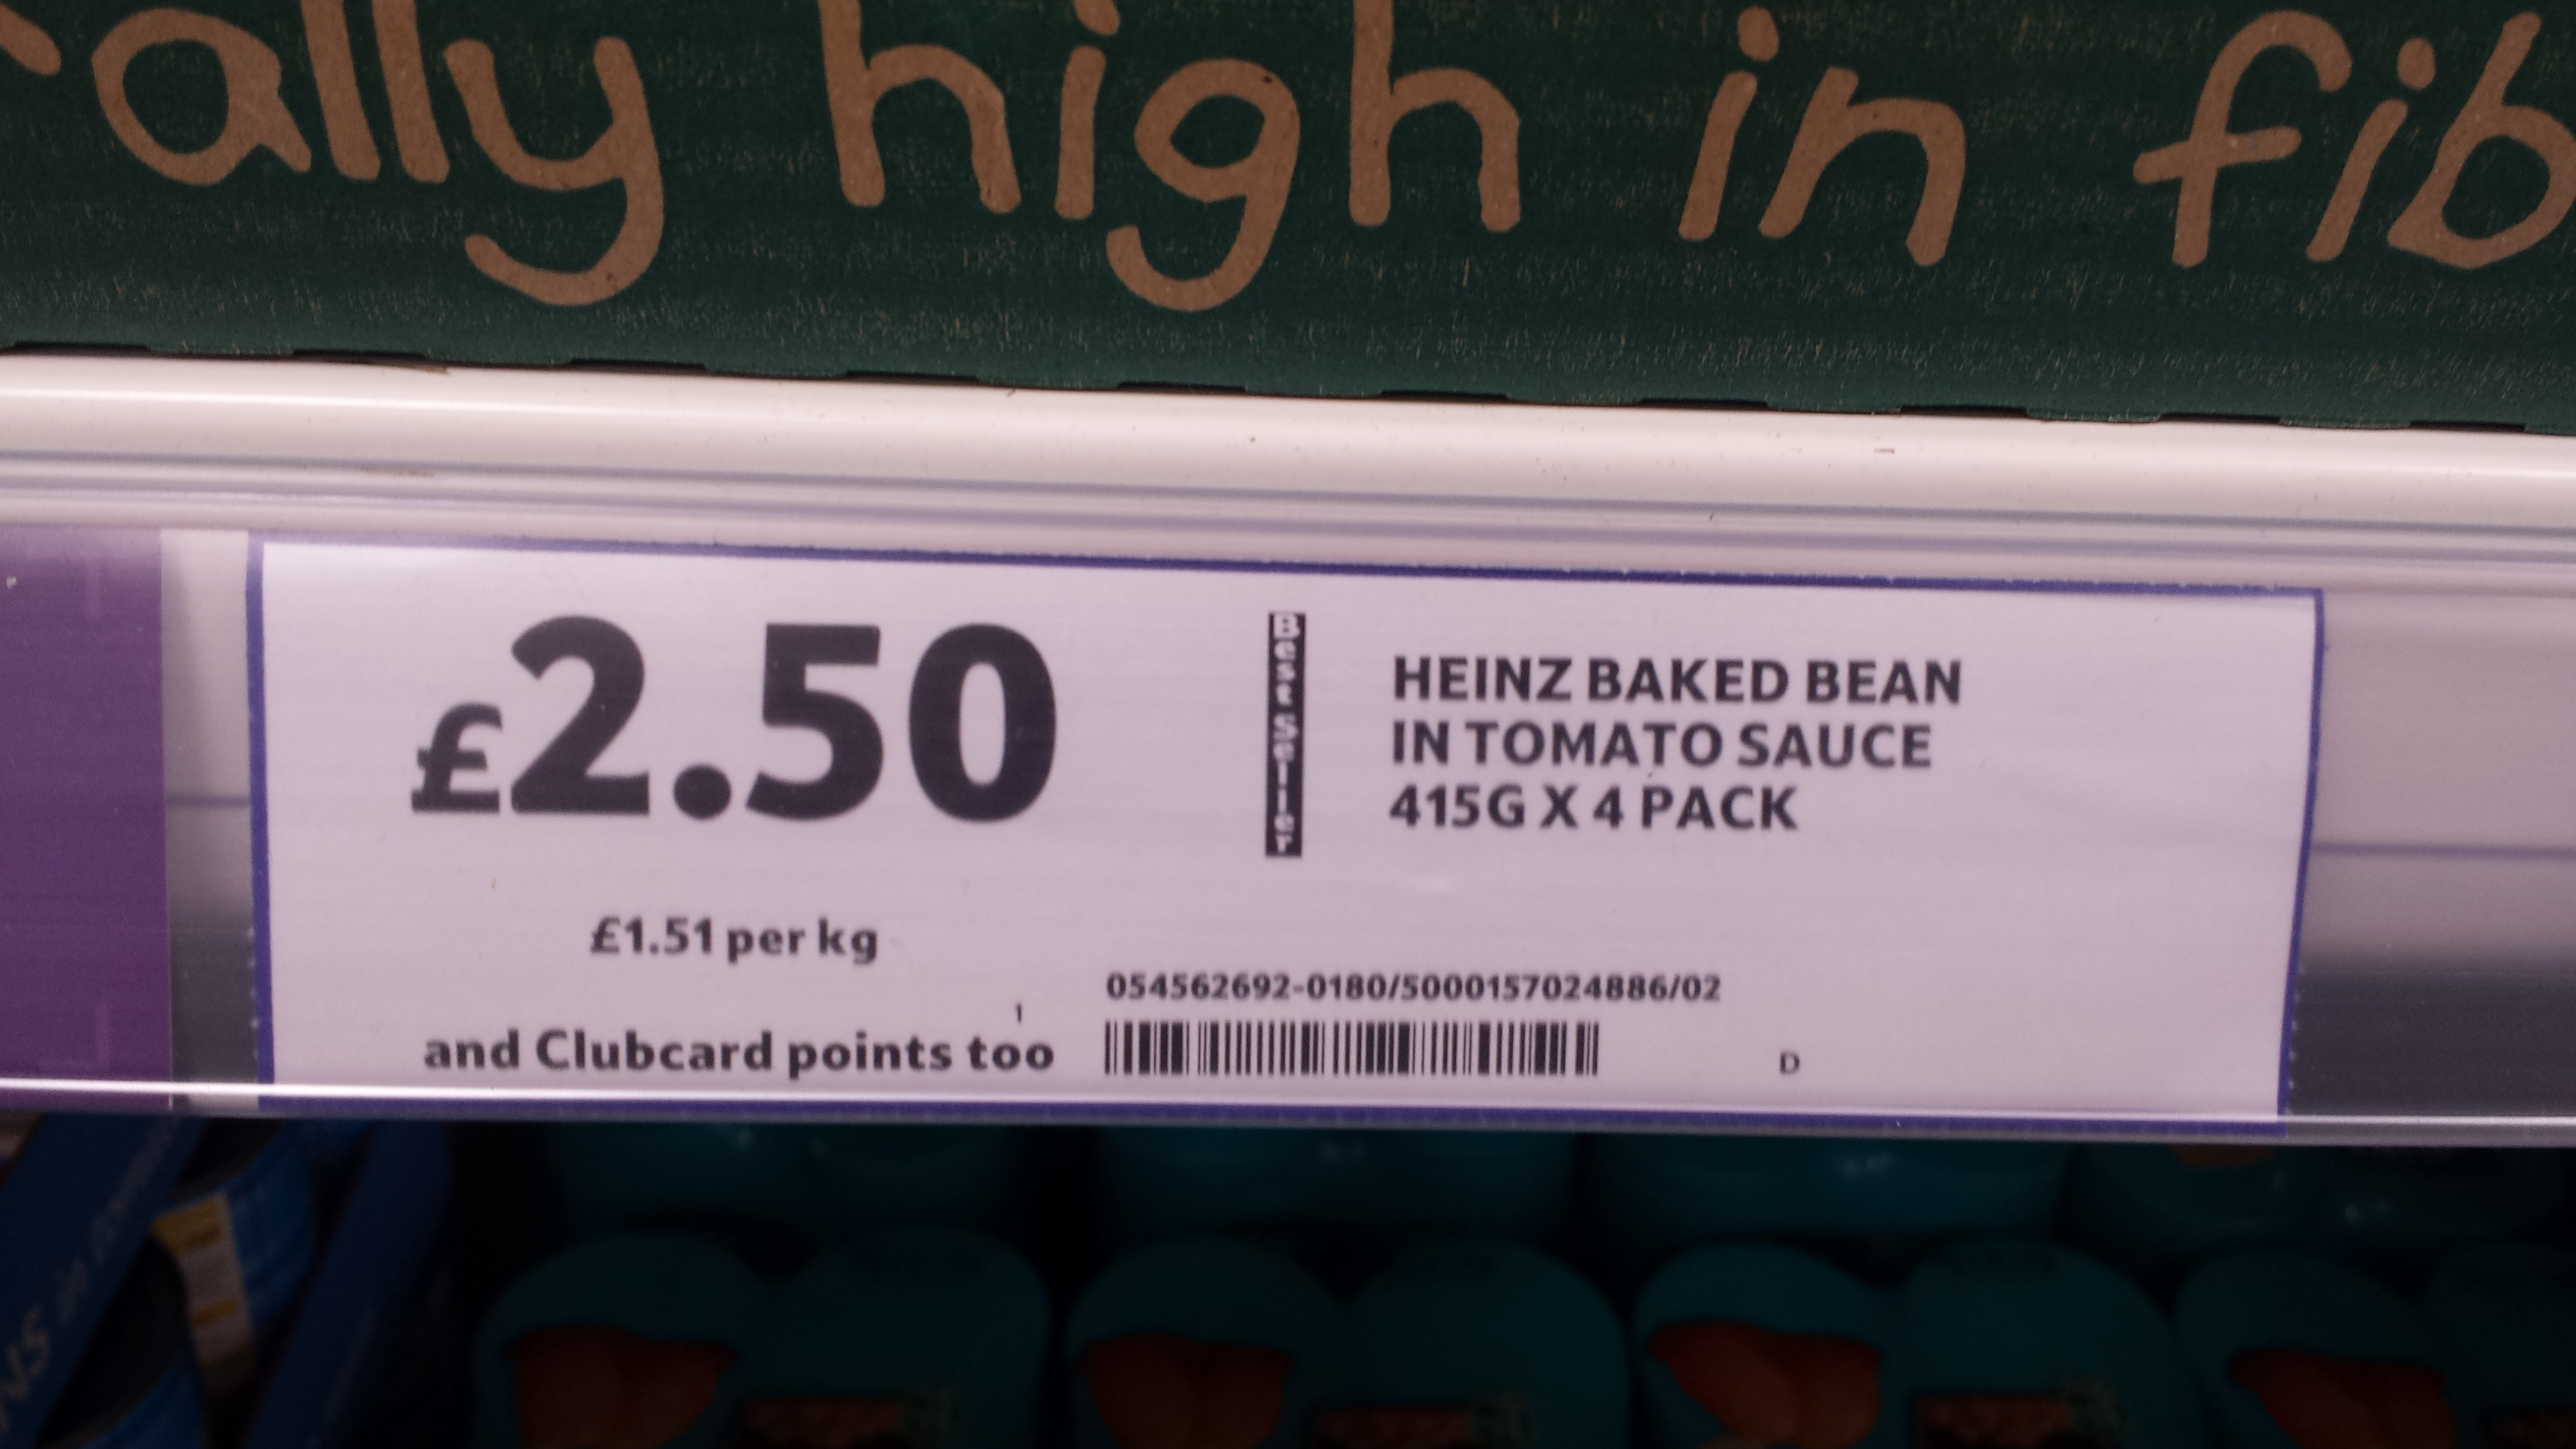 Heinz baked beans 4 pack at Tesco